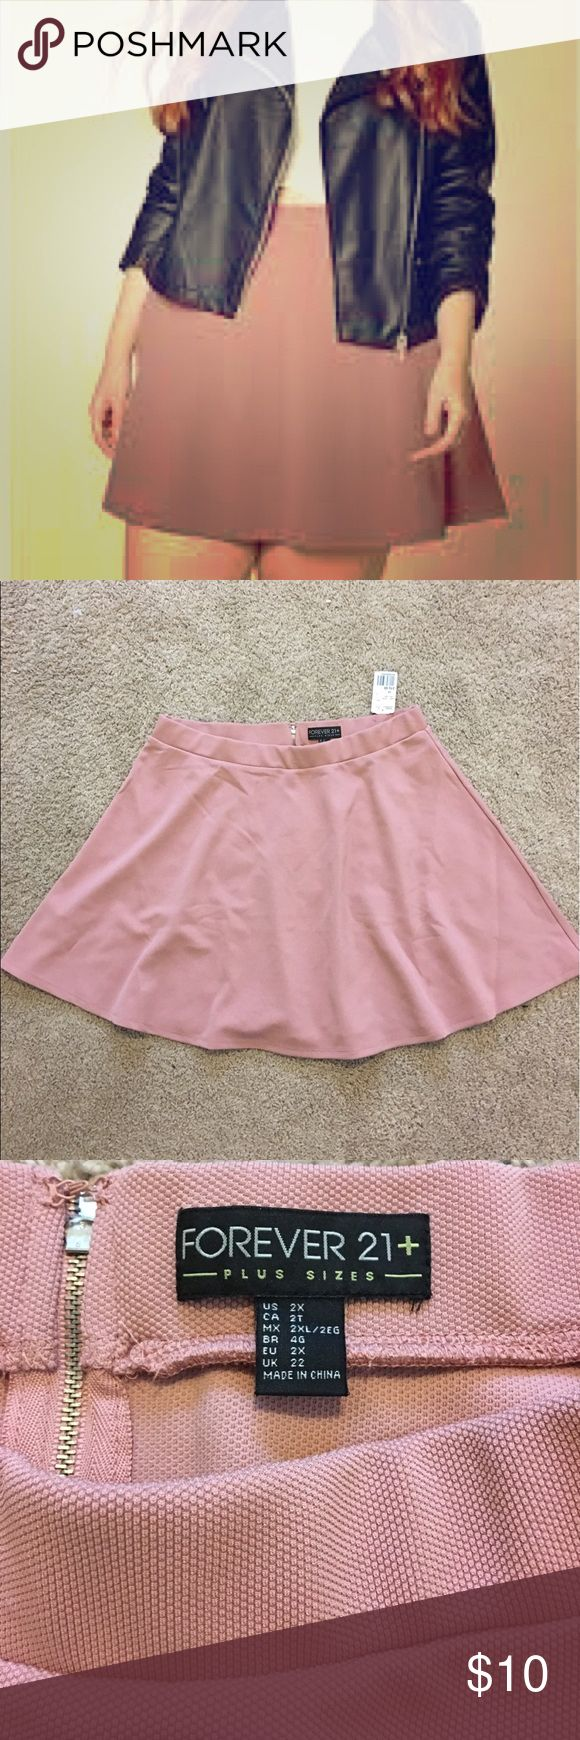 Pink skater skirt forever 21 plus This is a new, never worn pink skater skirt that I got from f21+ but it didn't suit my skin tone. It's textured, and not very structured. There is a zipper in the back. Forever 21 Skirts Circle & Skater